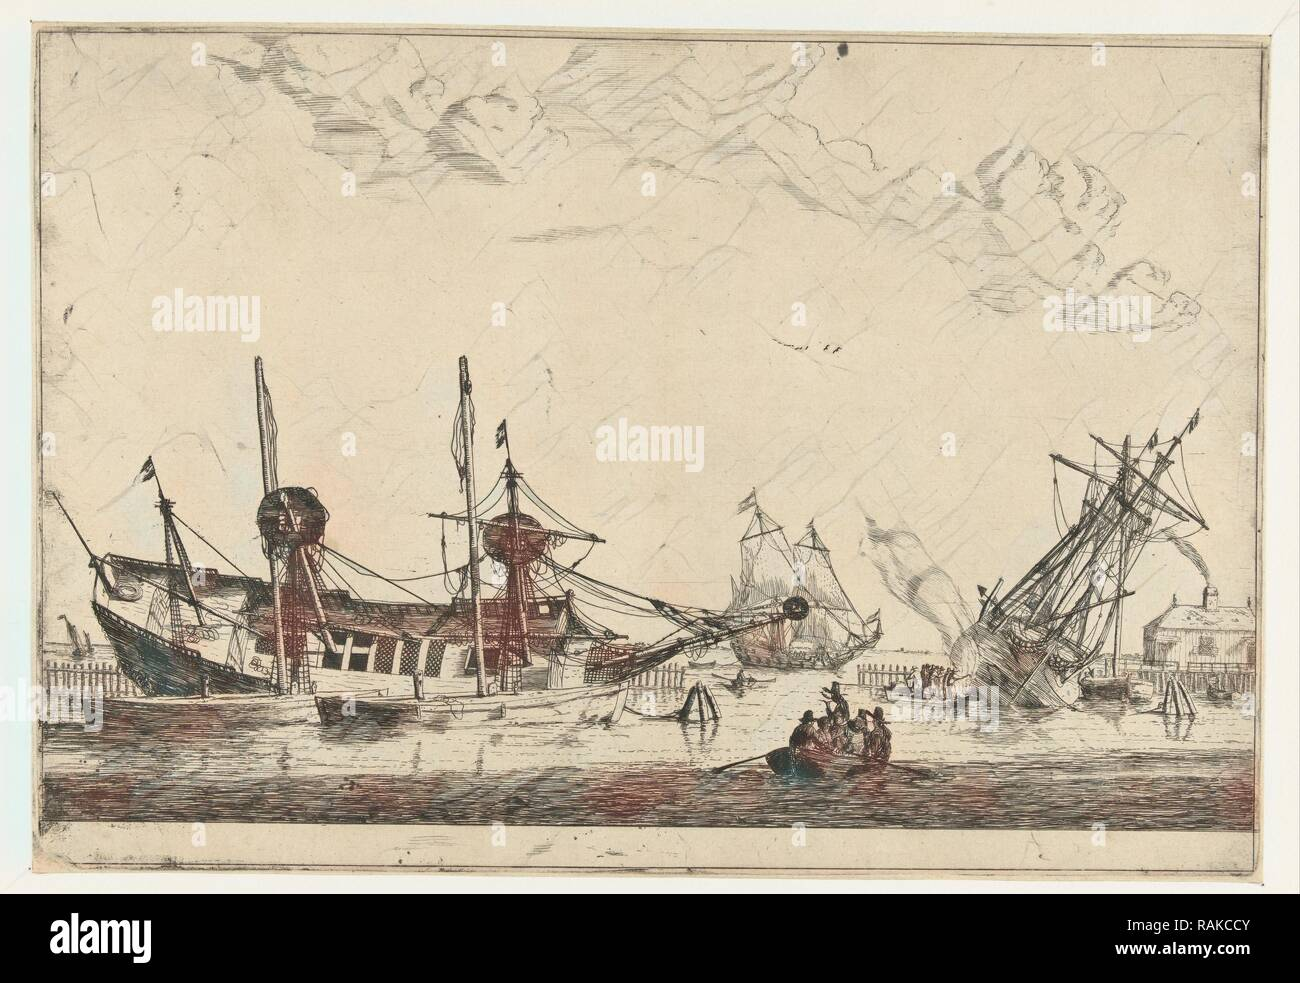 Two-keeled sailboats, Reinier Nooms, 1650 - 1664. Reimagined by Gibon. Classic art with a modern twist reimagined - Stock Image